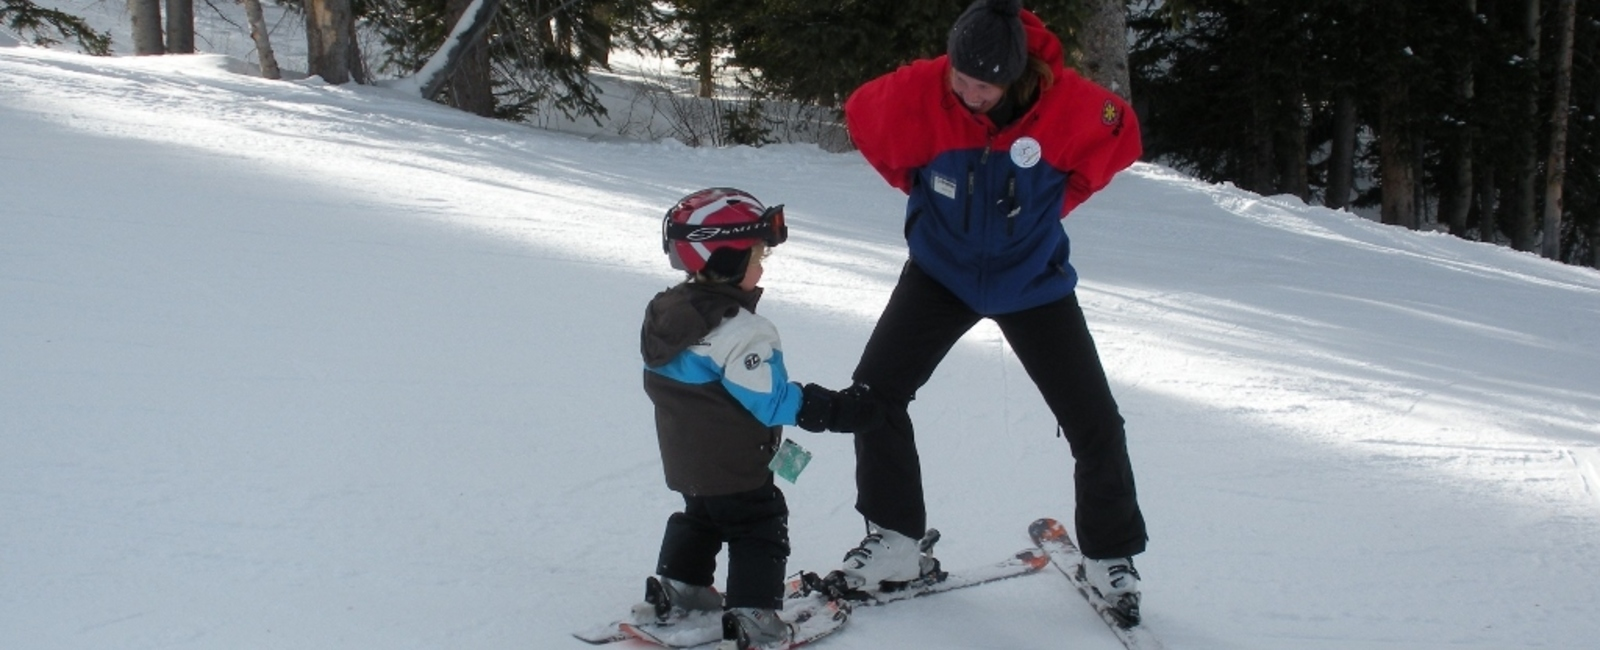 January is Learn to Ski & Snowboard Month